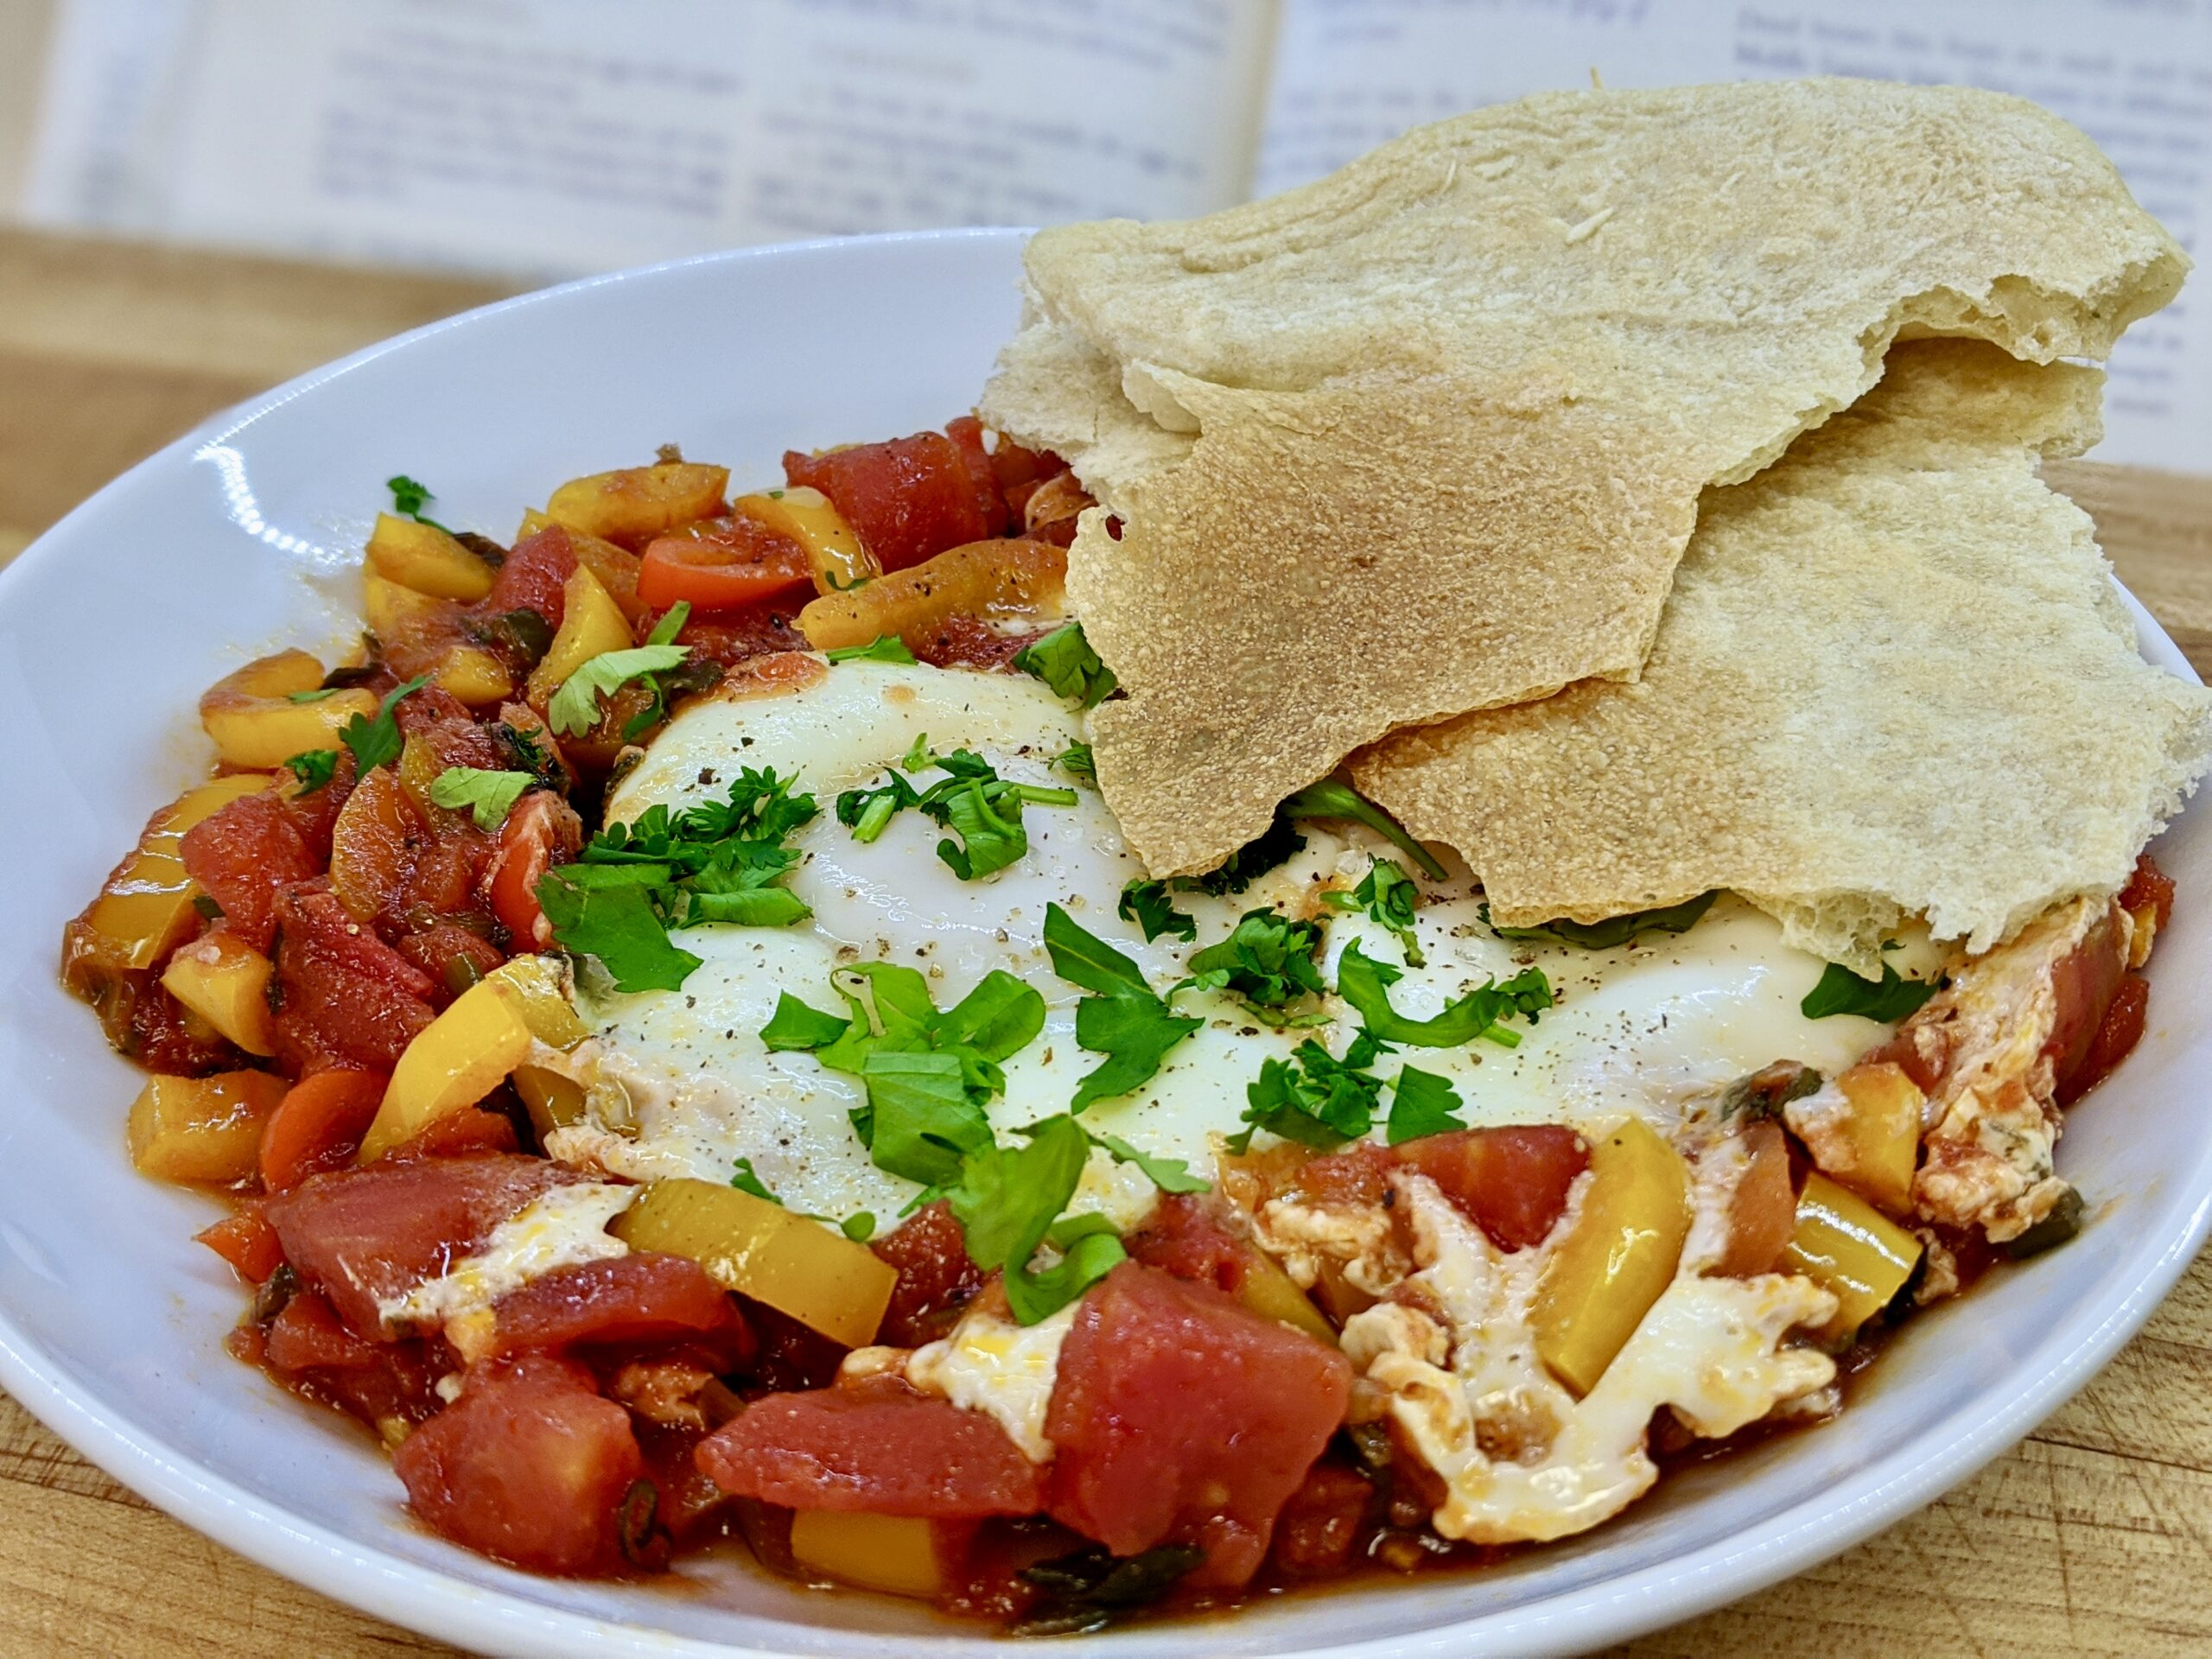 Meal 83 - Shakshouka - Fried Peppers and Tomatoes with Eggs